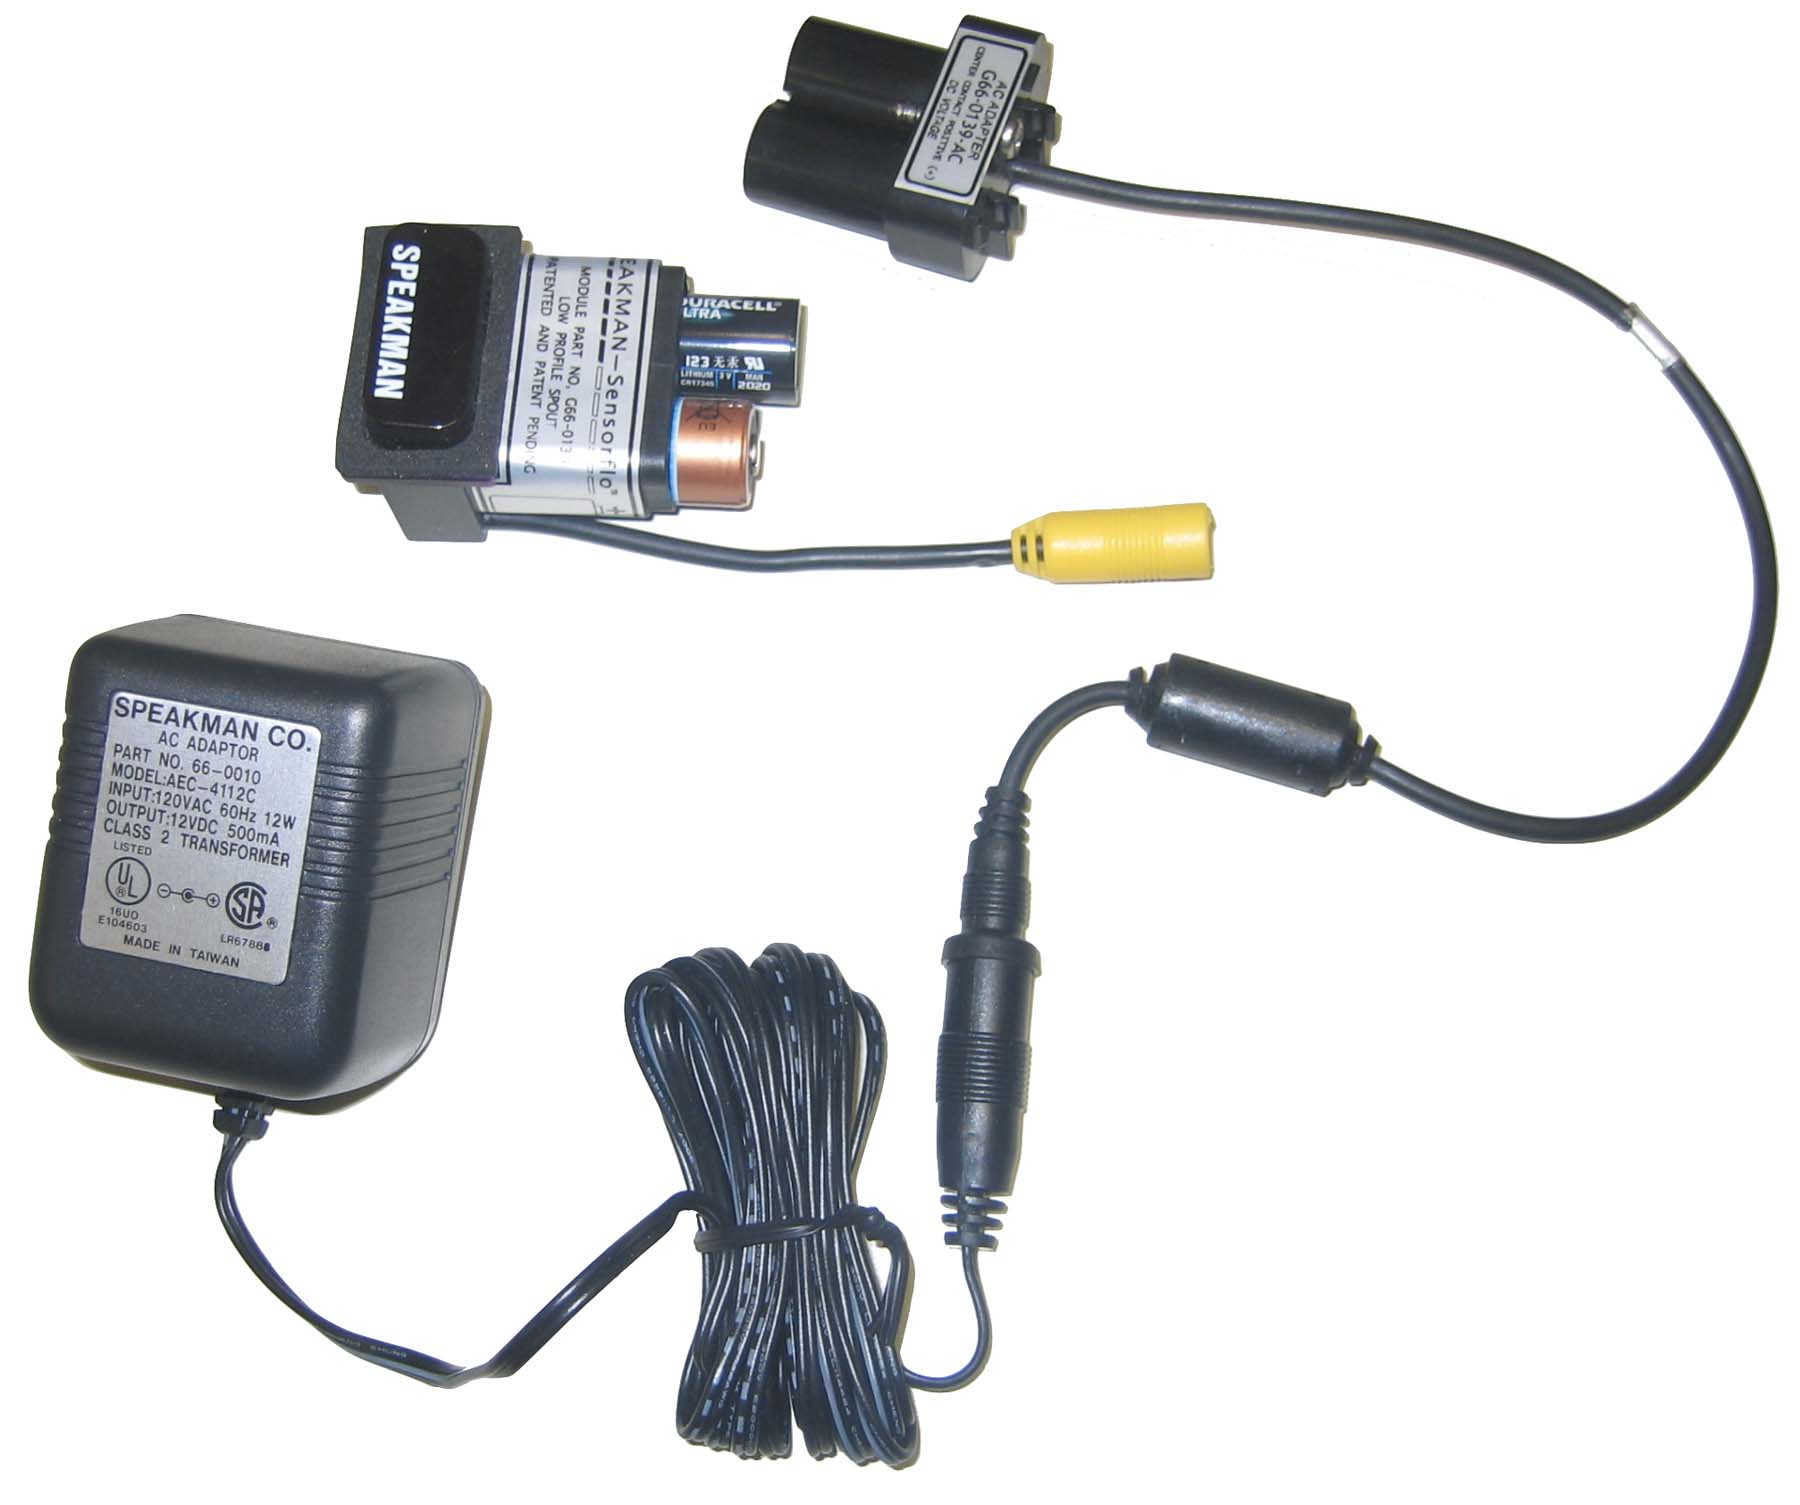 AC Adapter Kit - Behavioral Safety Products | Ligature Resistant